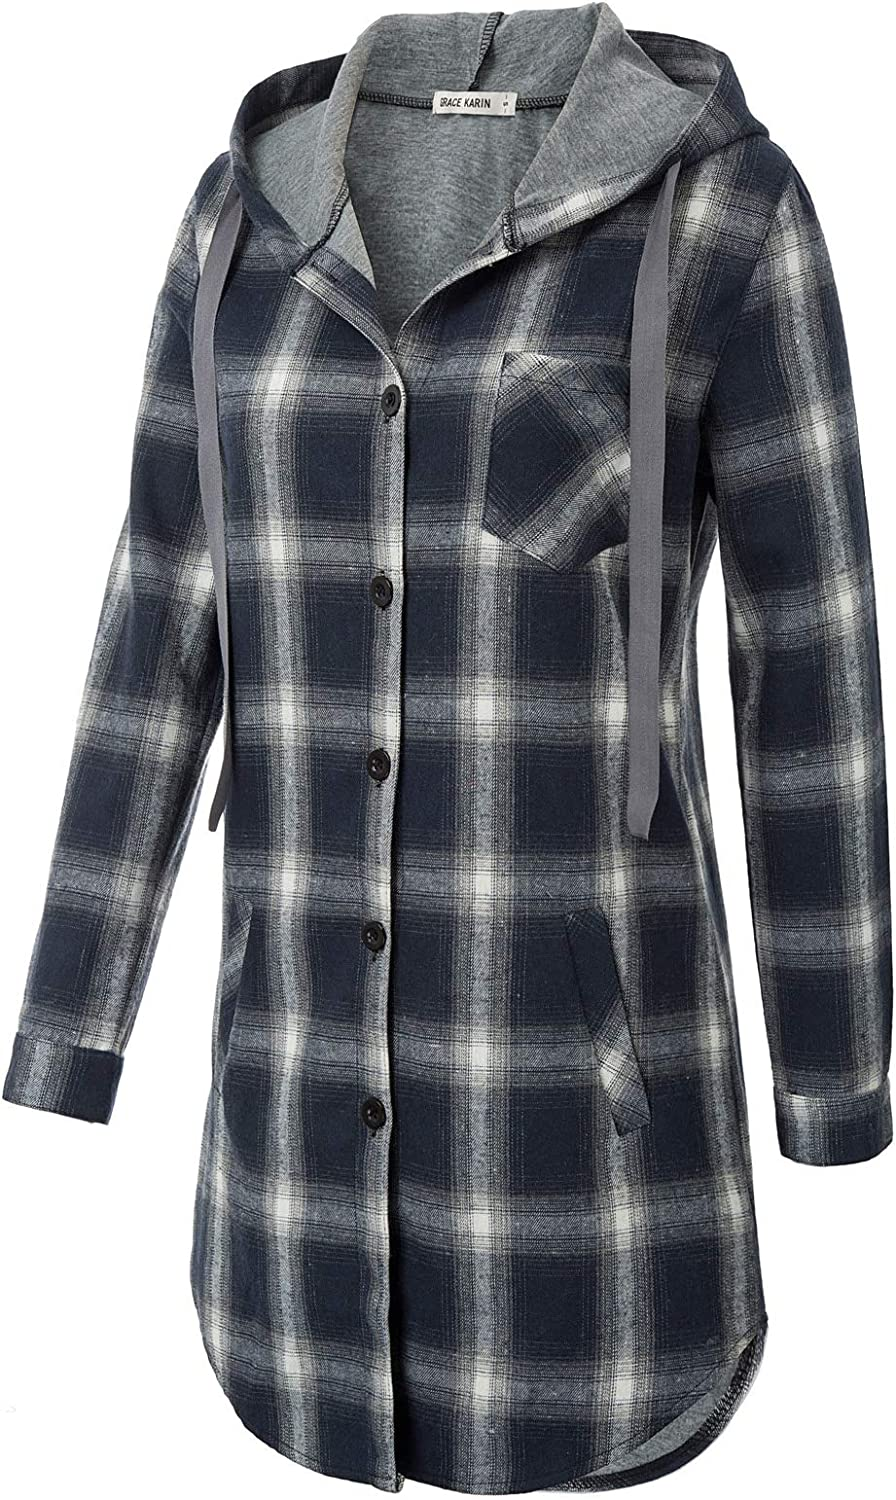 Women Flannel Plaid Button Down Top with Pockets Long Sleeve Hooded Jacket